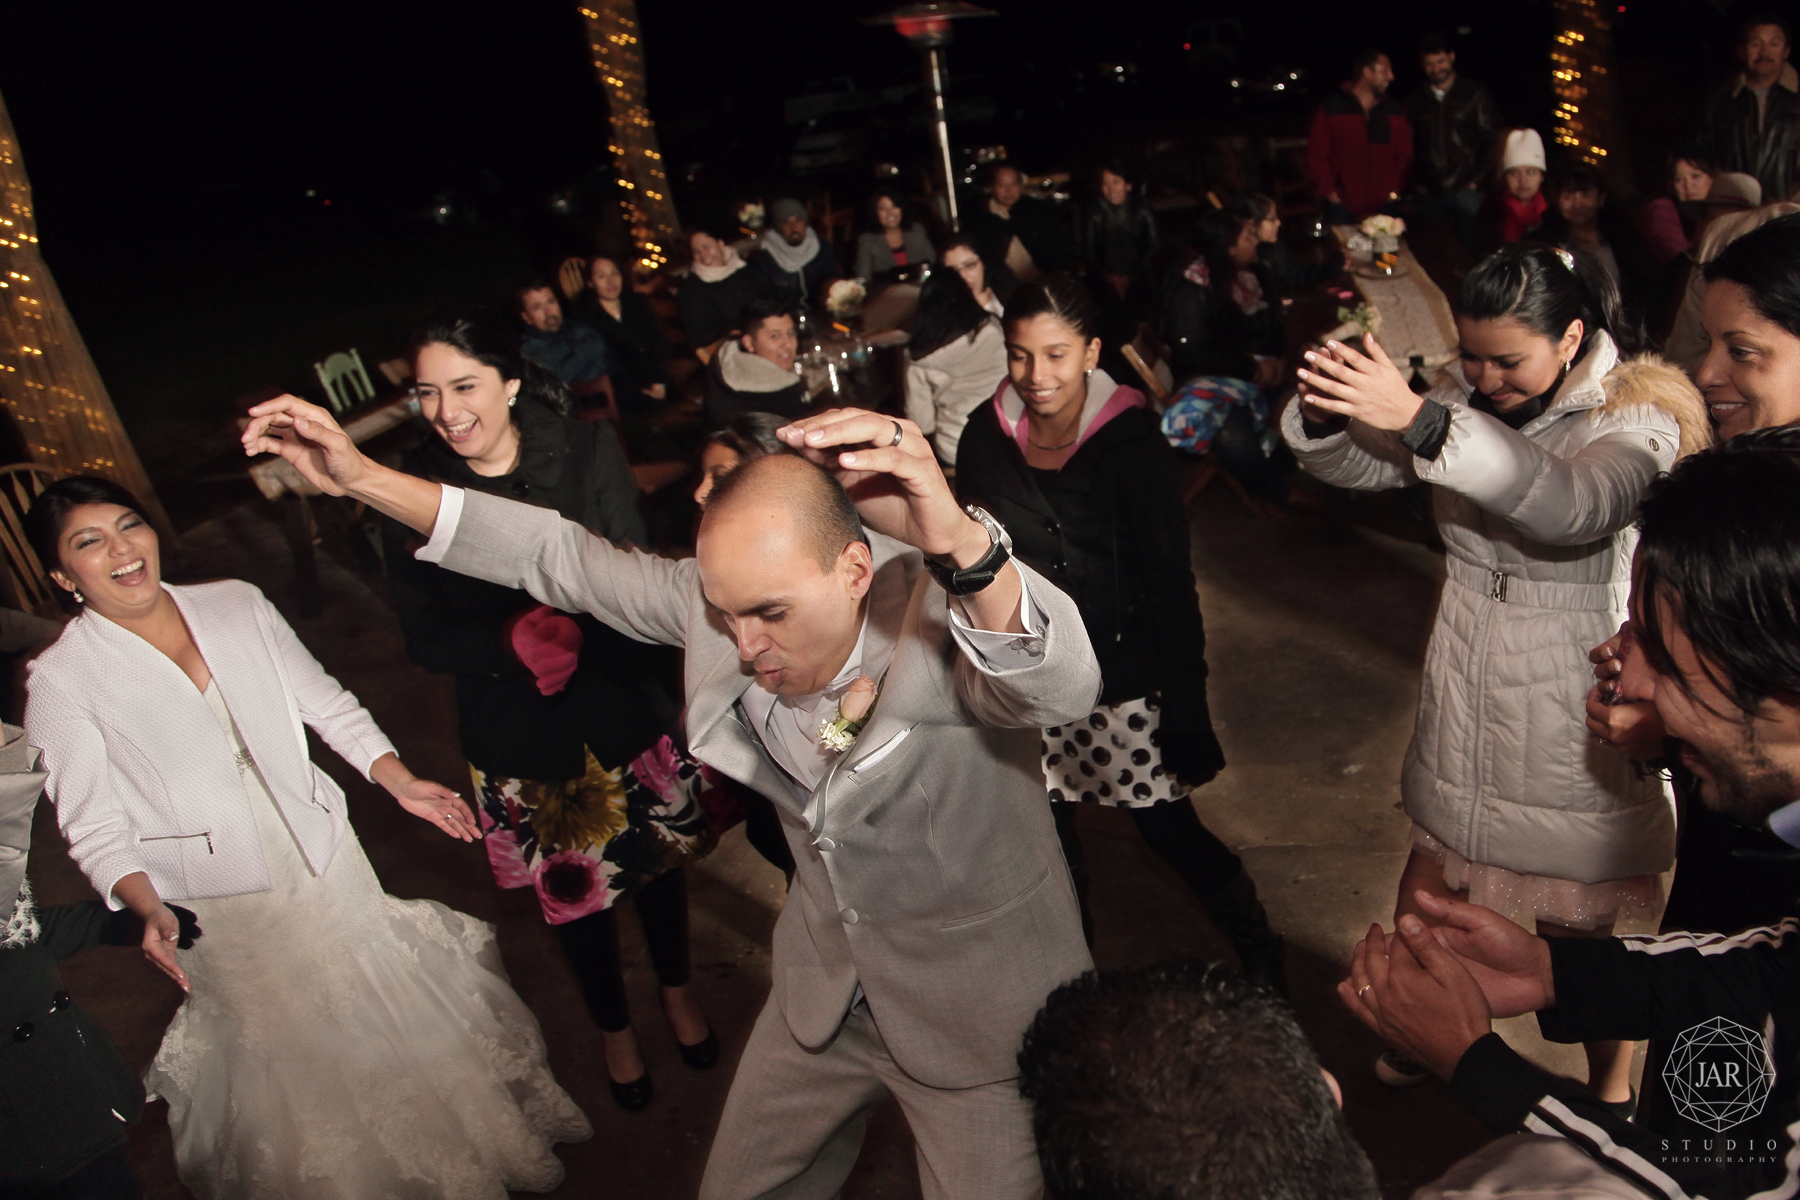 18-bride-groom-fun-dancing-isola-farms-jarstudio.jpg